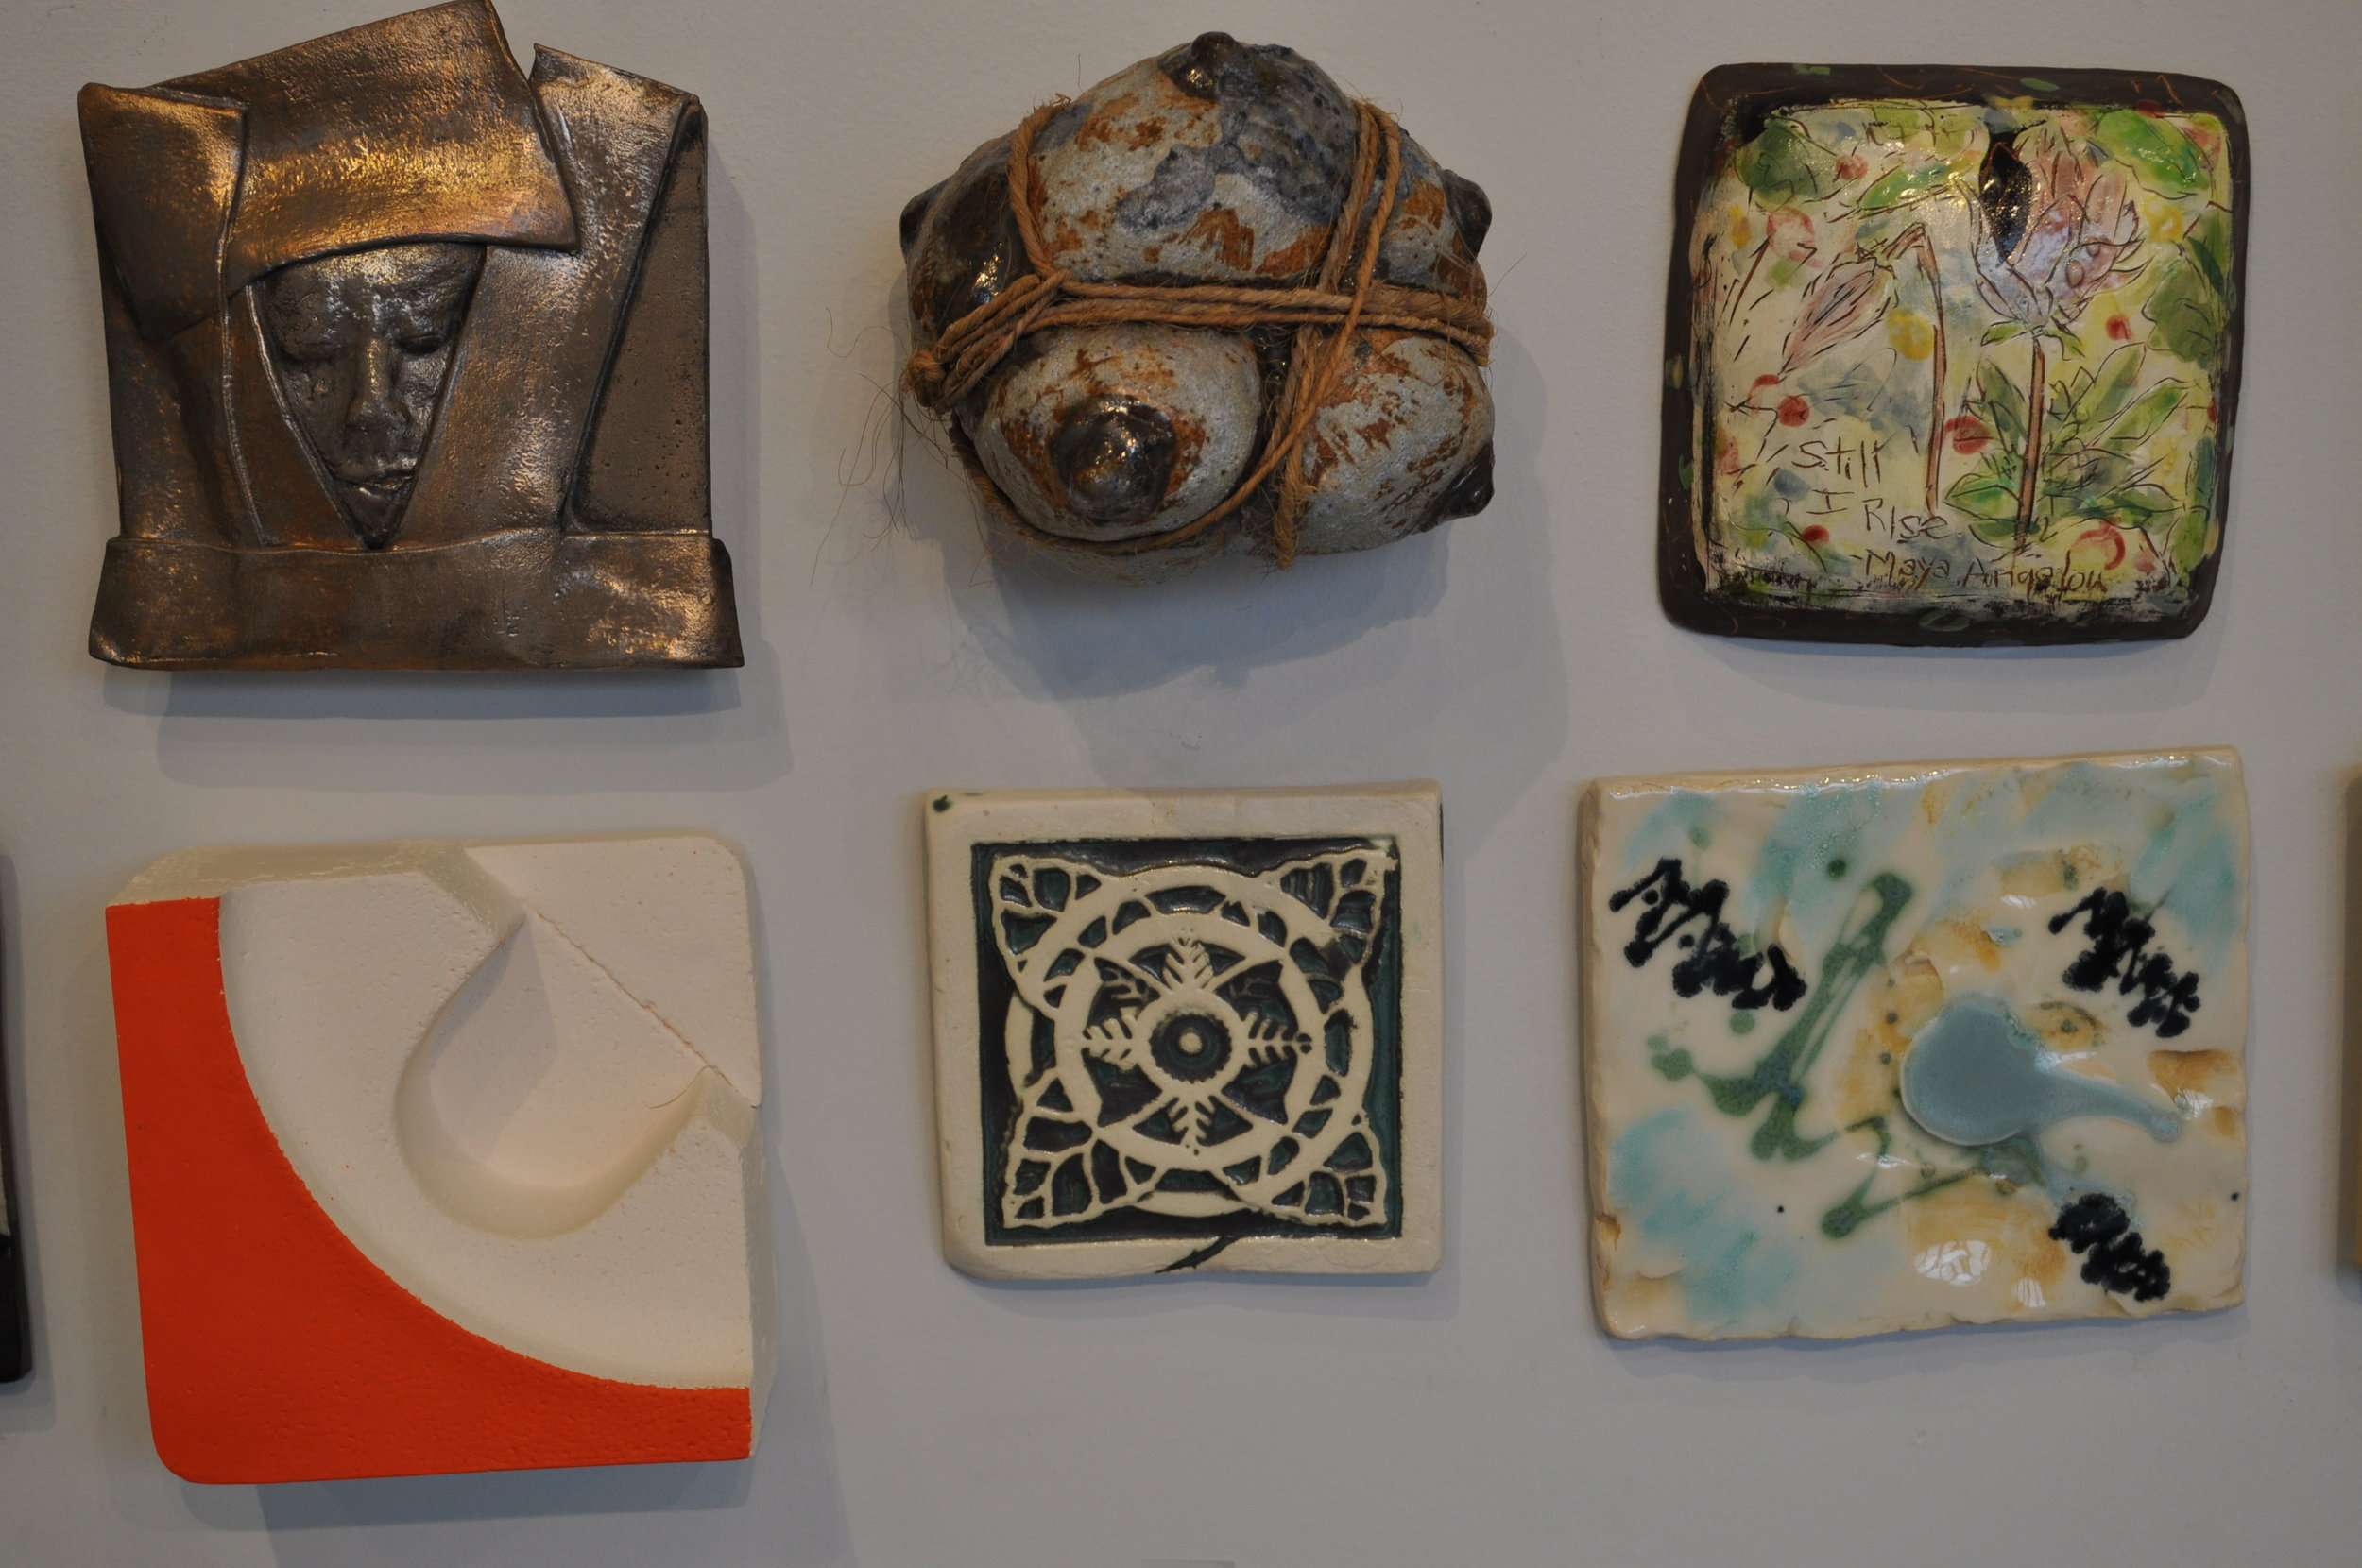 1 . Lily Schor,  Untitled  $200  2.  Mark Chatterley,  Bound  $125  3.  Diane Kenney,  Still I Rise  $125  4. Elenor Wilson,  Construction Foam #4  $150   5.  Sana Musasama,  Tile 2 $80  6.  Roni Cohen,  Lost In The Palette  $38